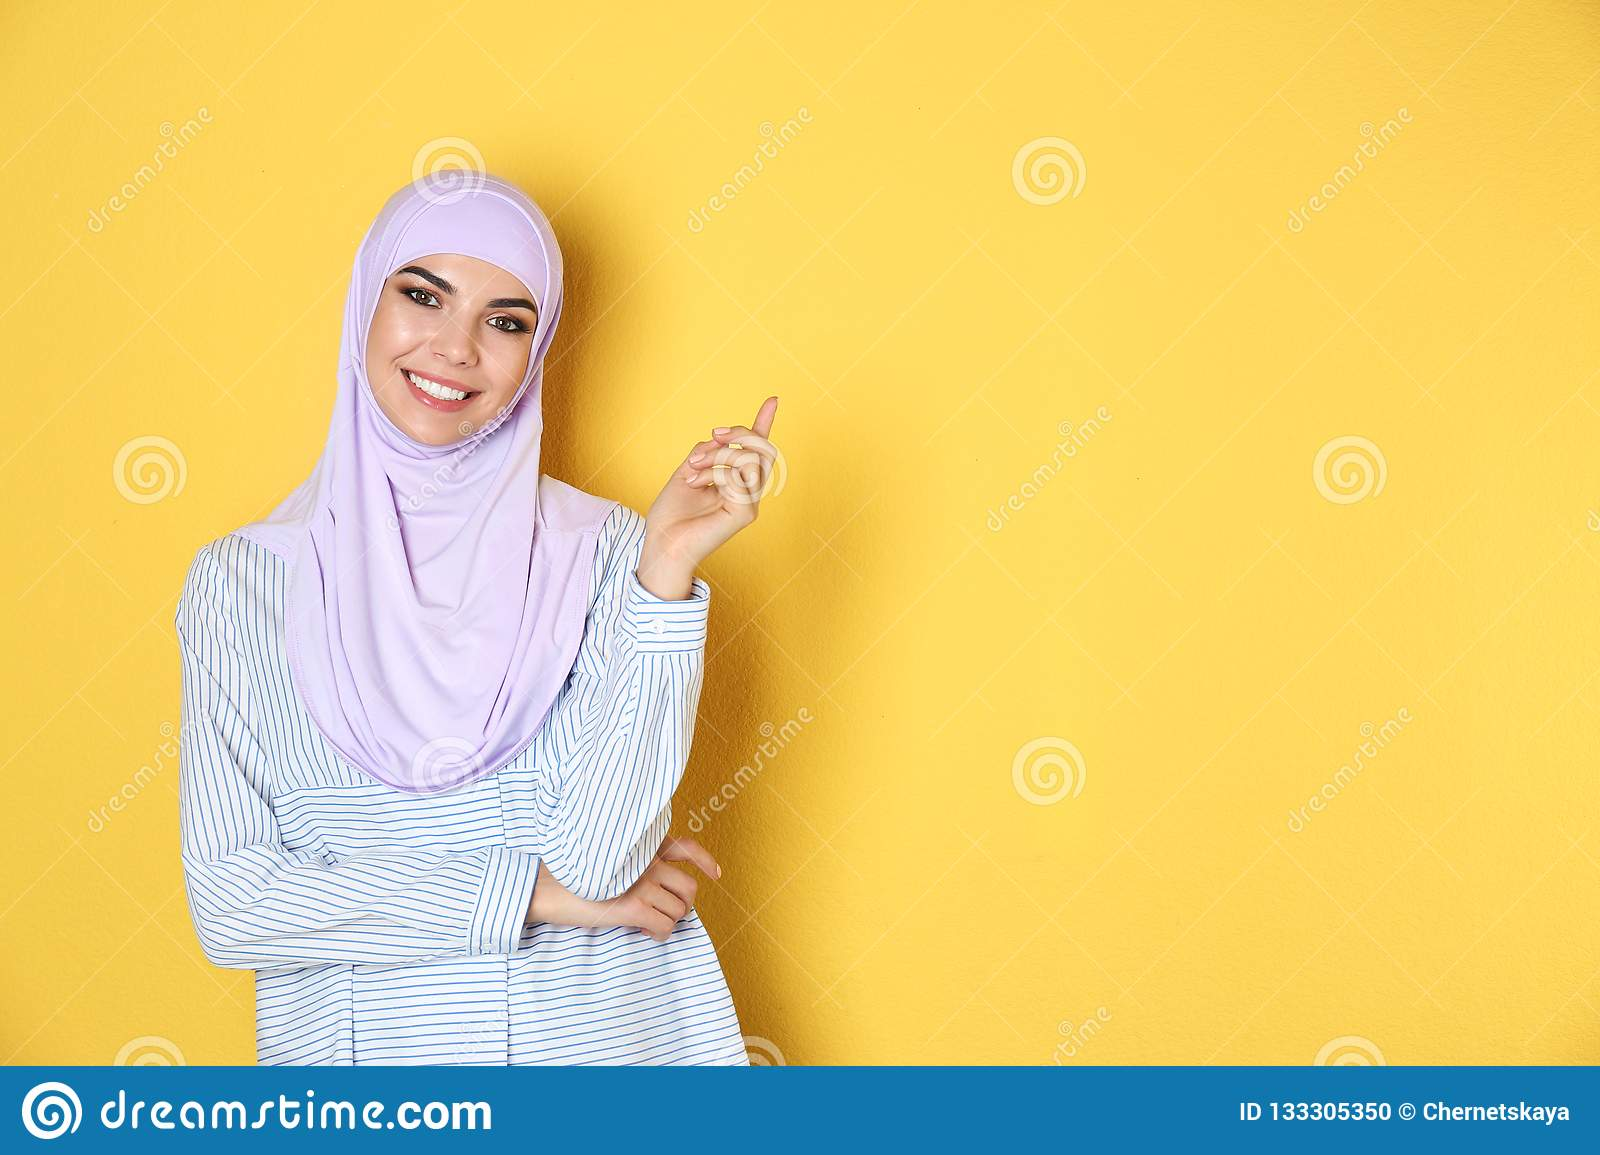 Portrait of young Muslim woman in hijab against color background.